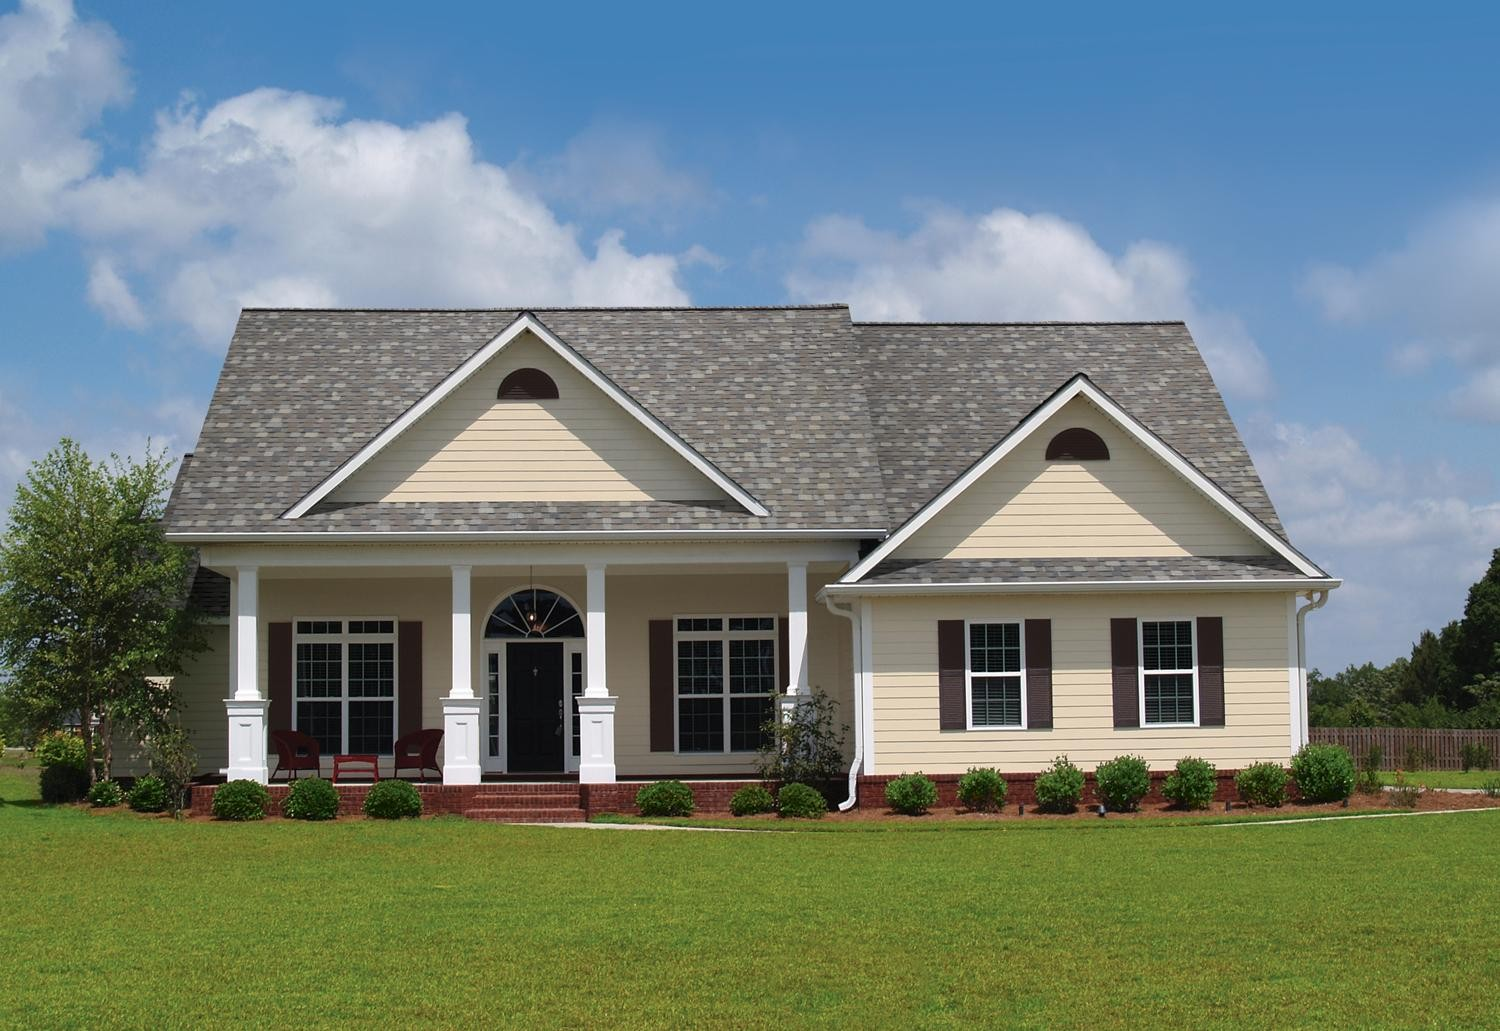 Certainteed Roofing Introduces Patriot A Shingle